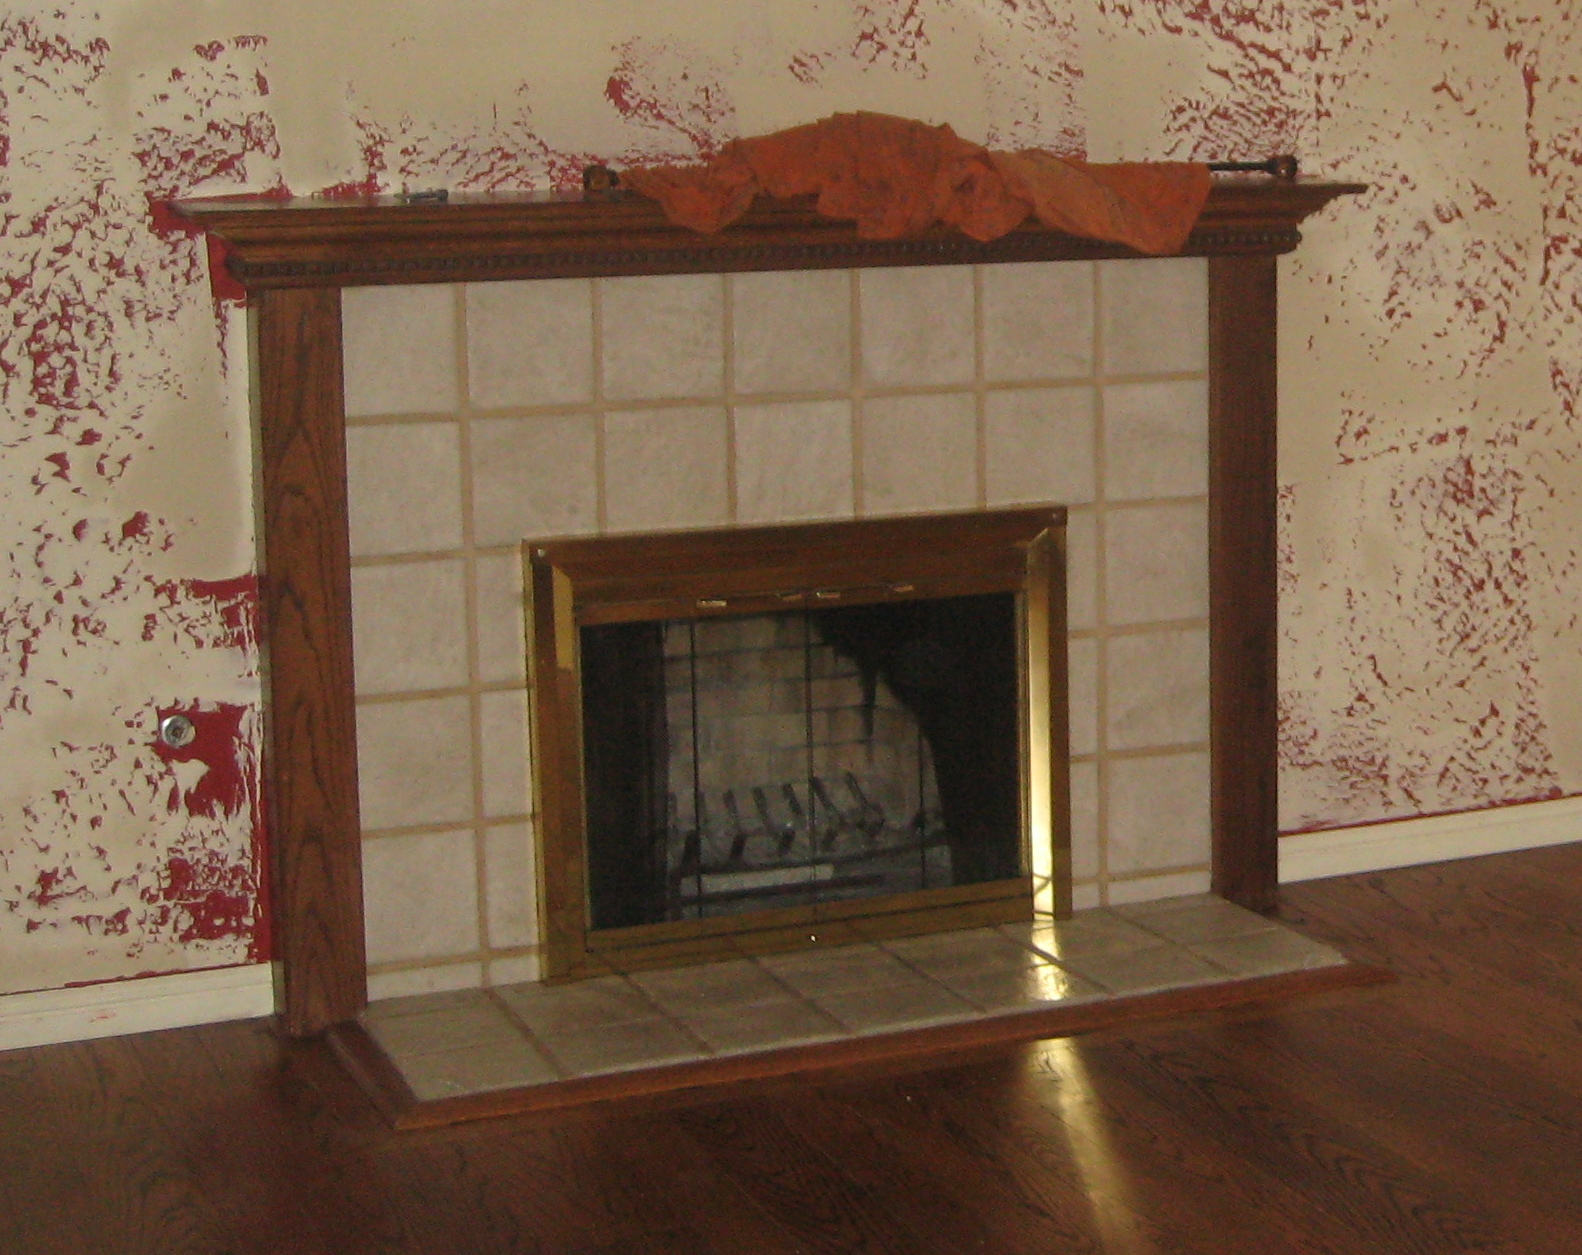 McKeown Residence: Operation fireplace